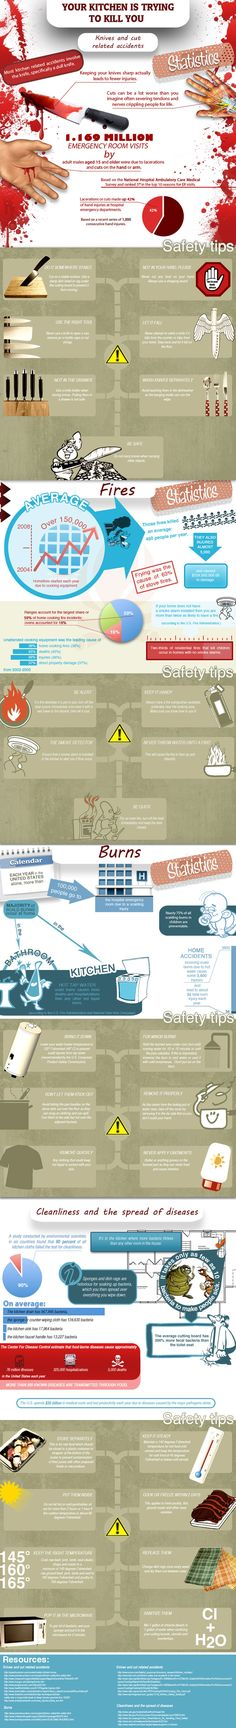 Kitchen Safety infographic. Almost makes you want to stay out of the kitchen --- almost! :)